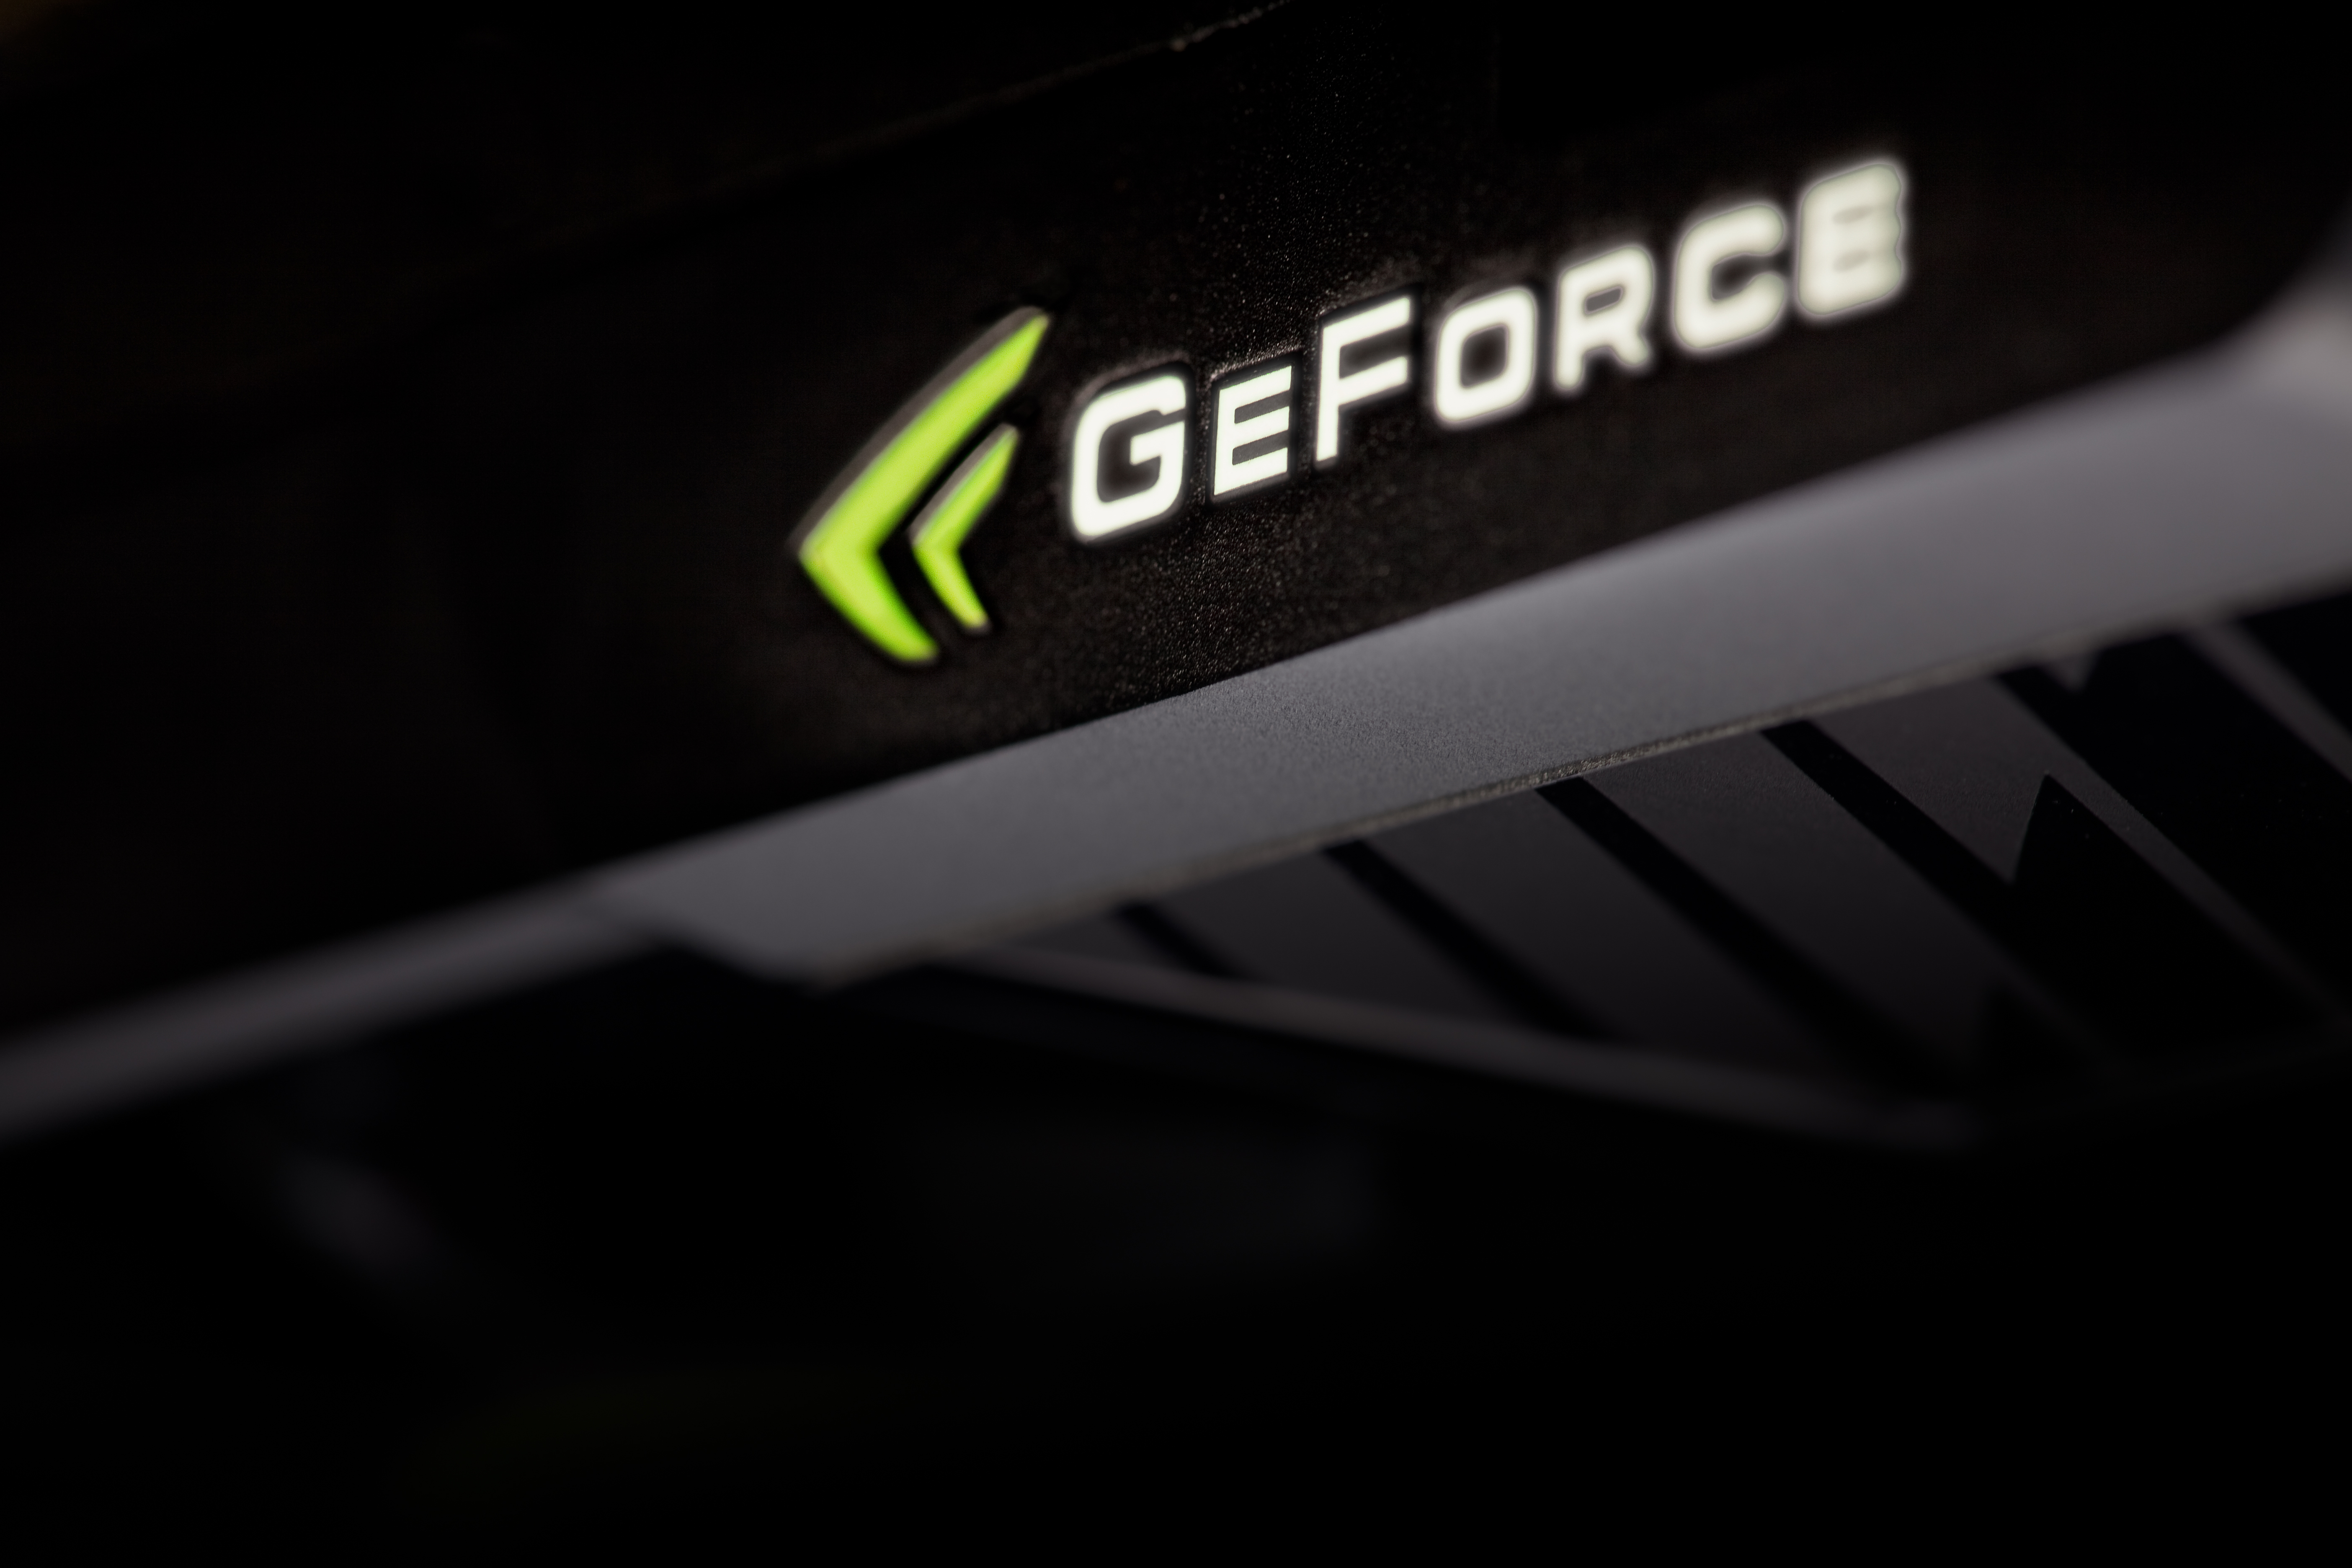 NVIDIA GEFORCE GTX 590 IS WORLDS FASTEST GRAPHICS CARD